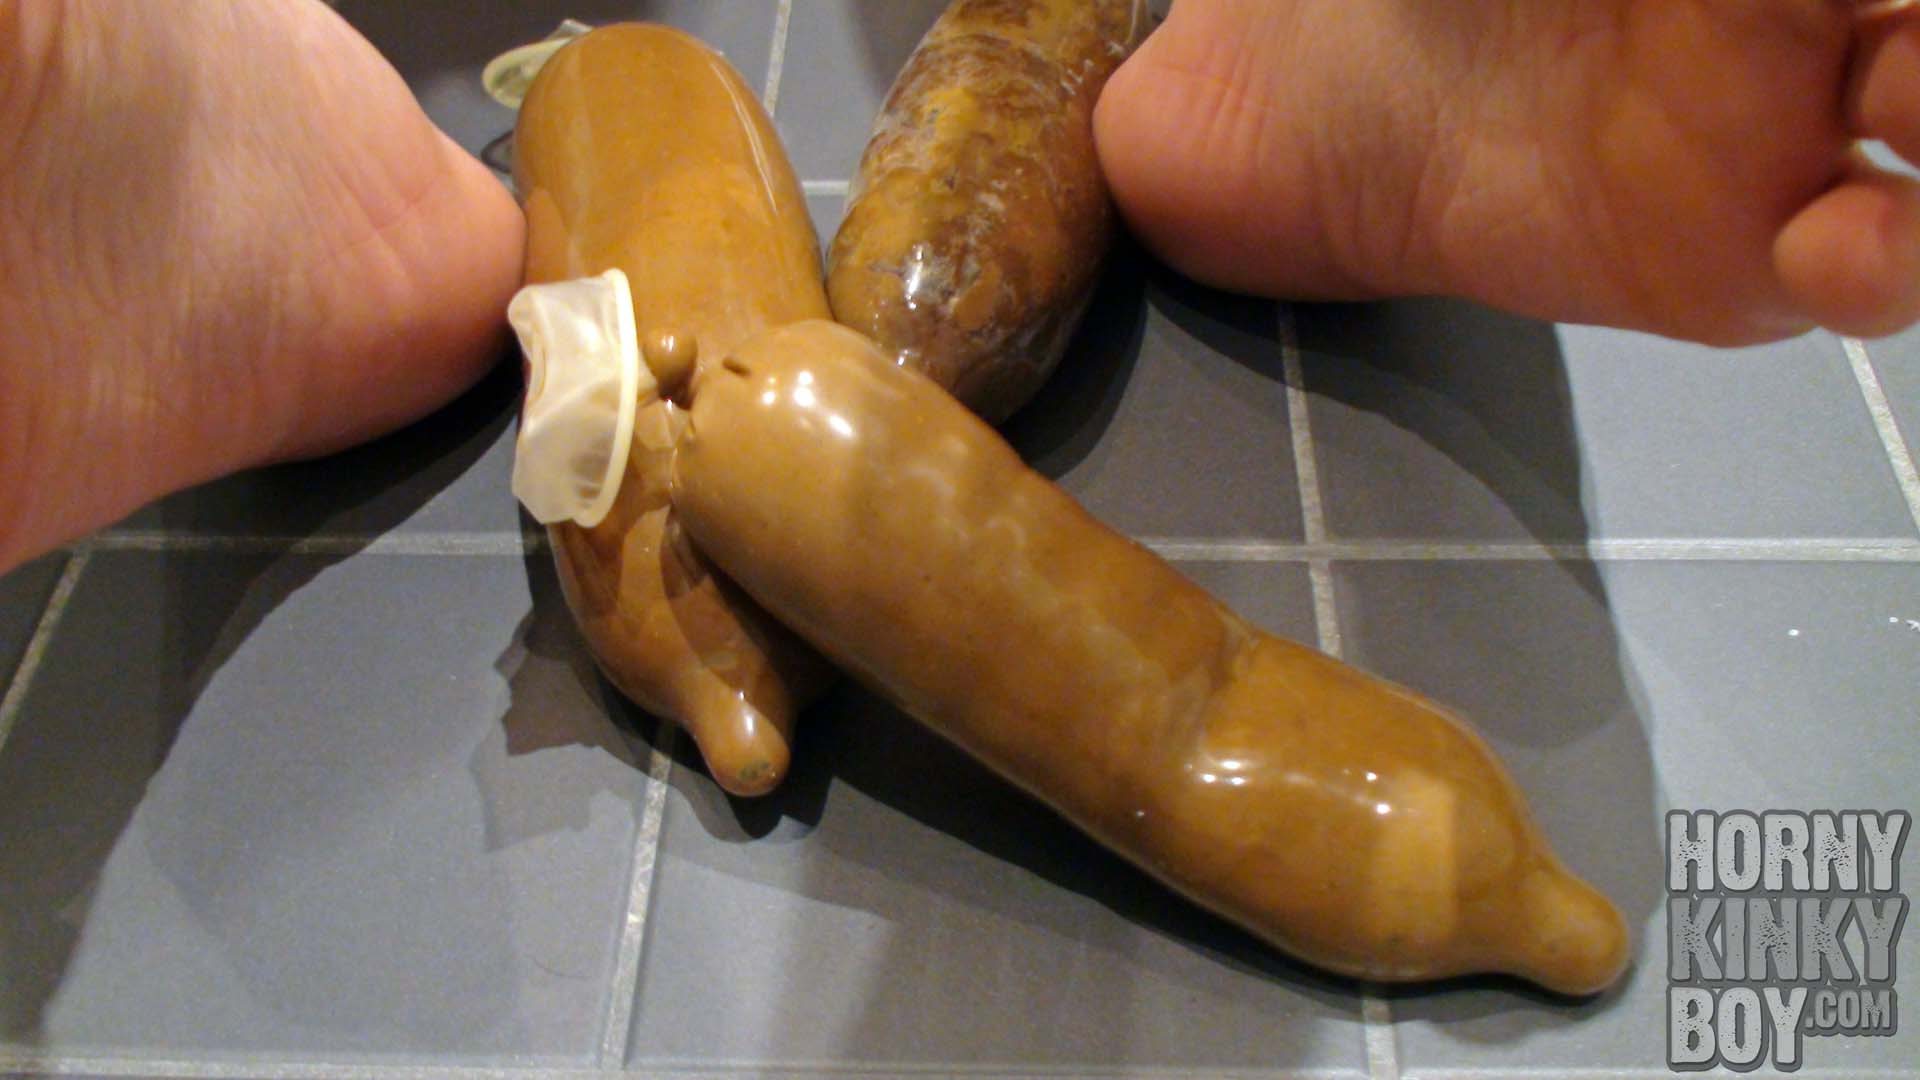 My Feet And My Shit Condoms